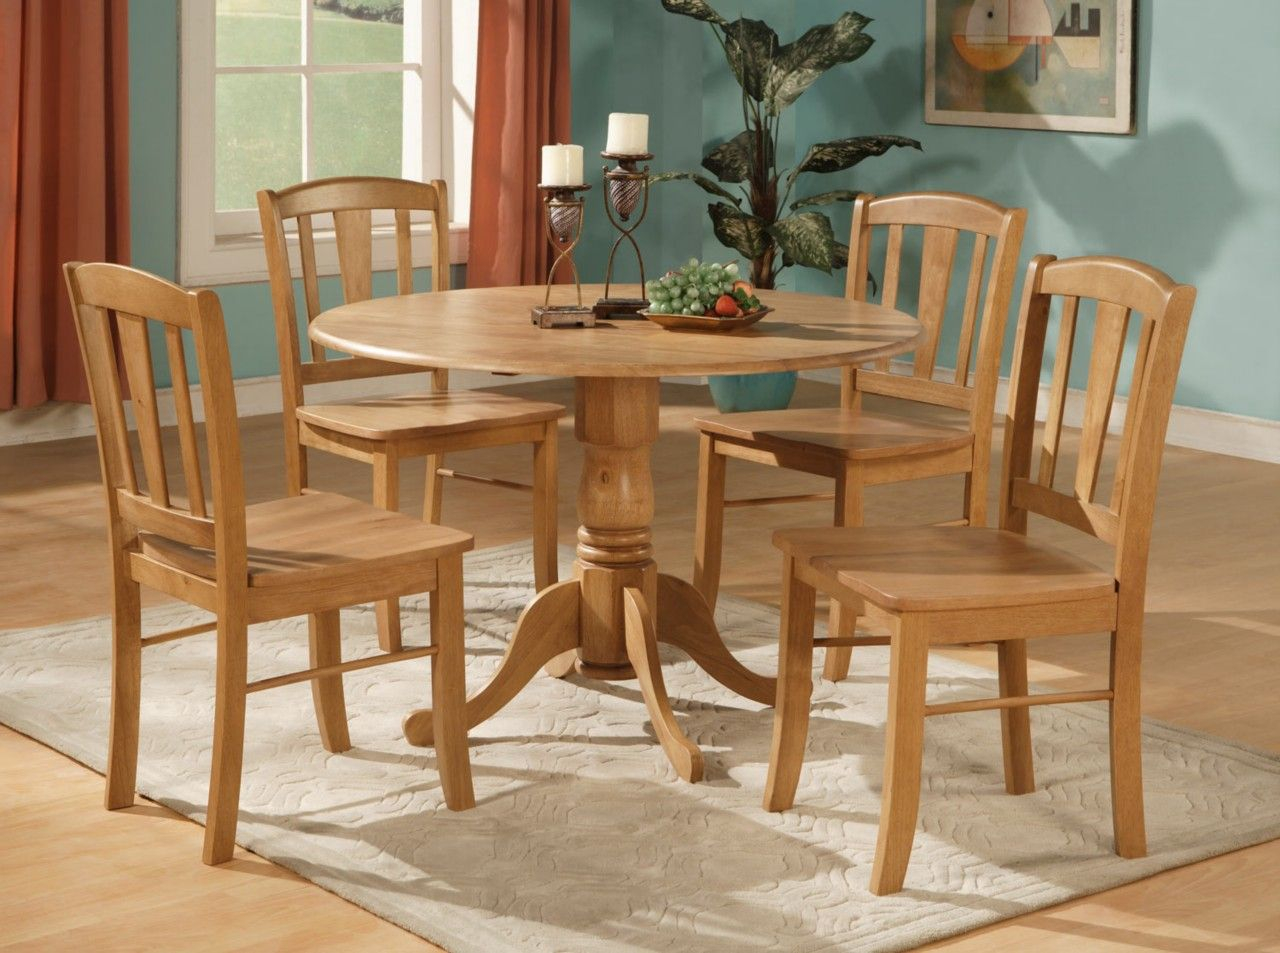 Kitchenwood Kitchen Table And Chairs Sets Wood Dining Table And